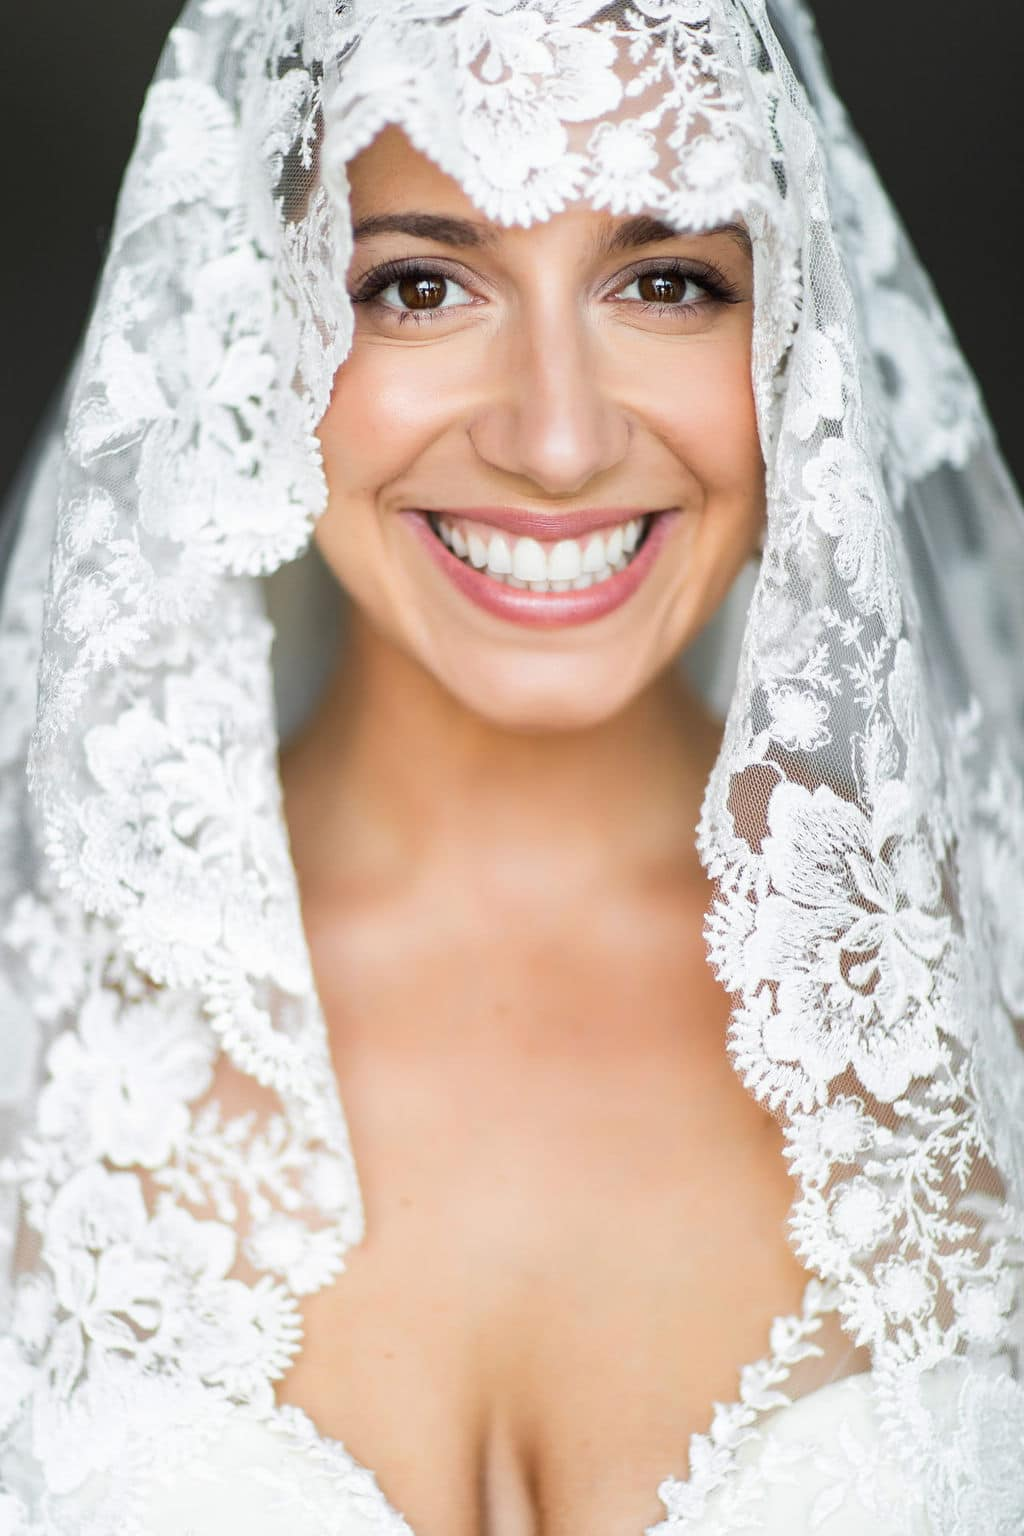 beautifully hand made lace veil on portrait of bride